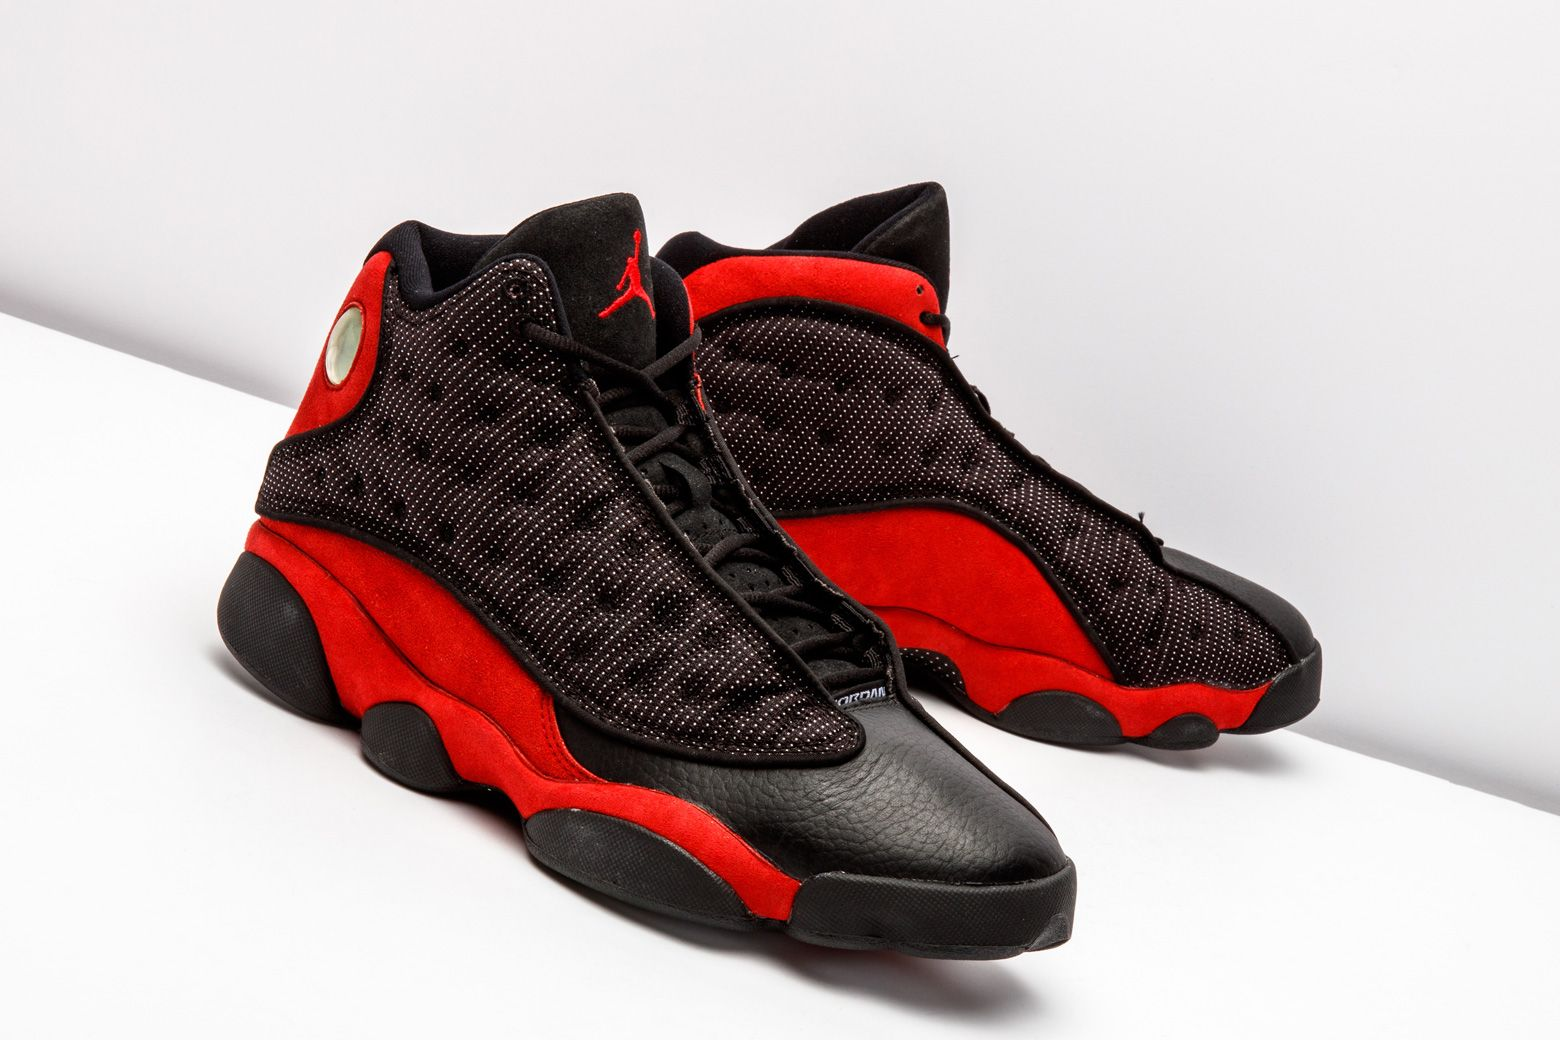 69b212ff16d2 Air Jordan 13 Retro - 414571 010